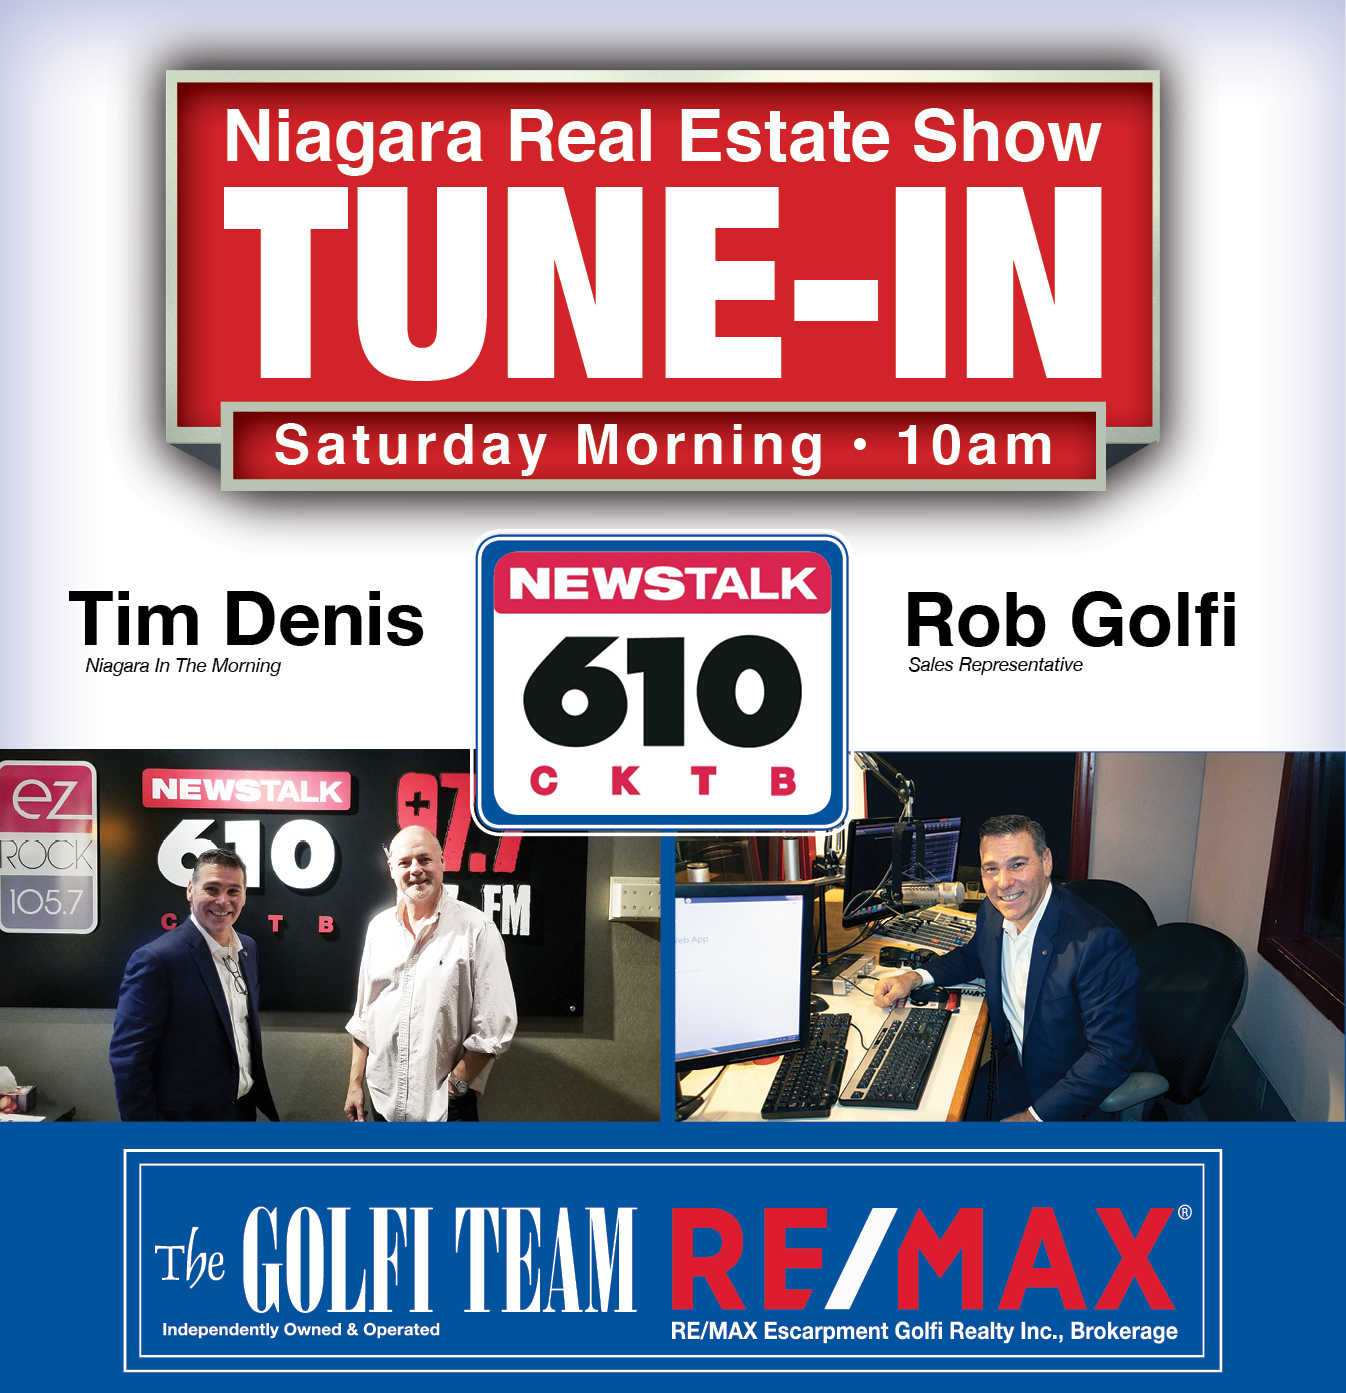 NewsTalk 610 CKTB - The best real estate agents in Hamilton, Halton and Niagara Region